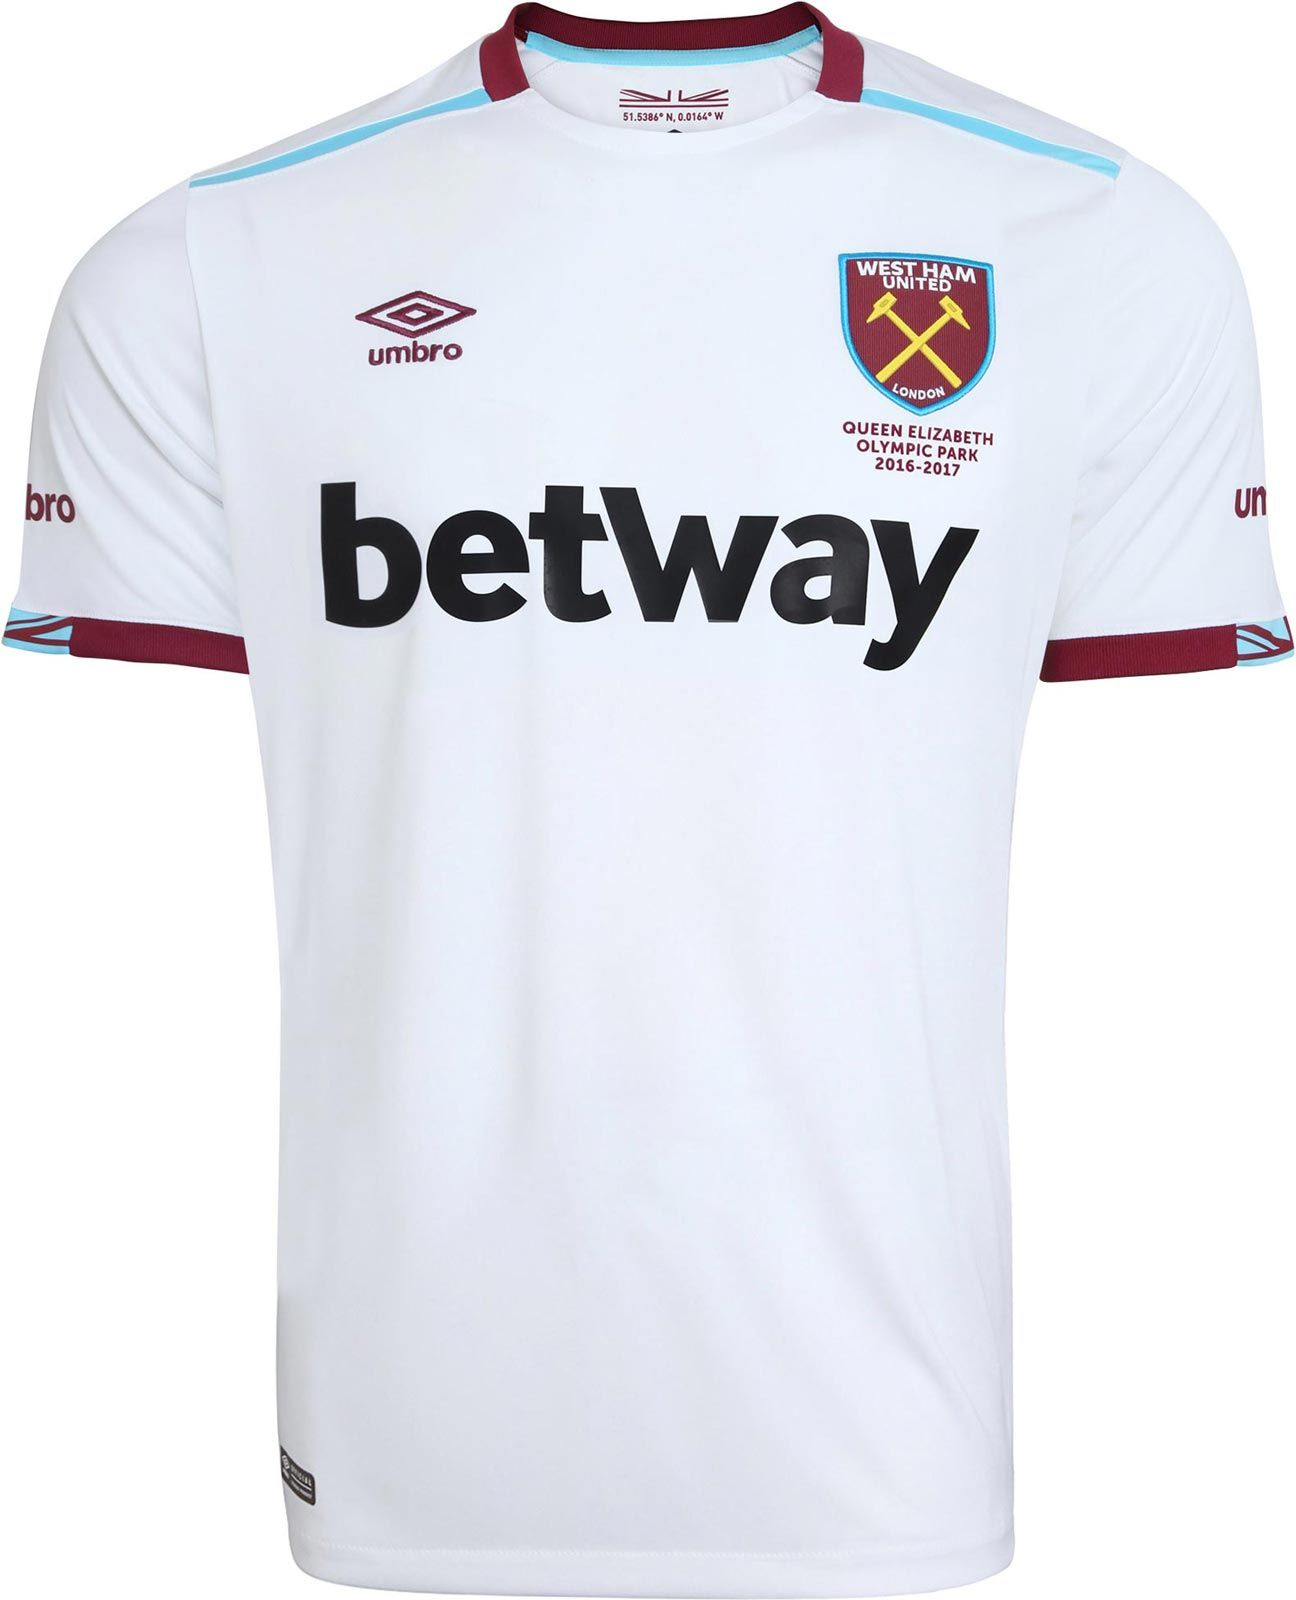 Umbro Bb46813226 West Ham United Football Soccer Away